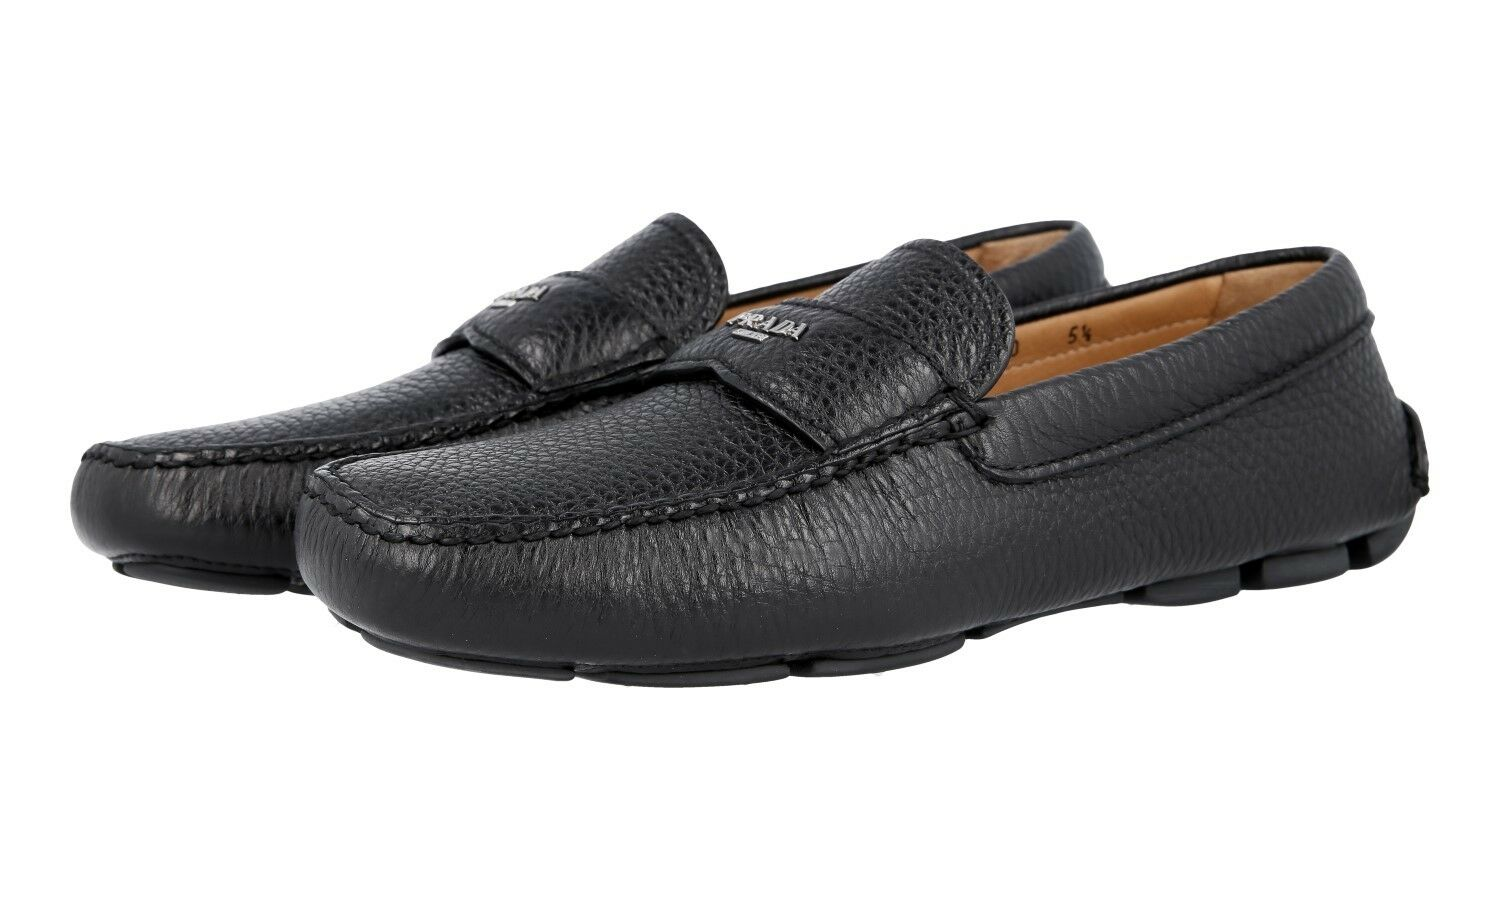 Auth LUXURY PRADA logo Mocassino Scarpe 2D2170 NERO DAINO NEW 6,5 40,5 41